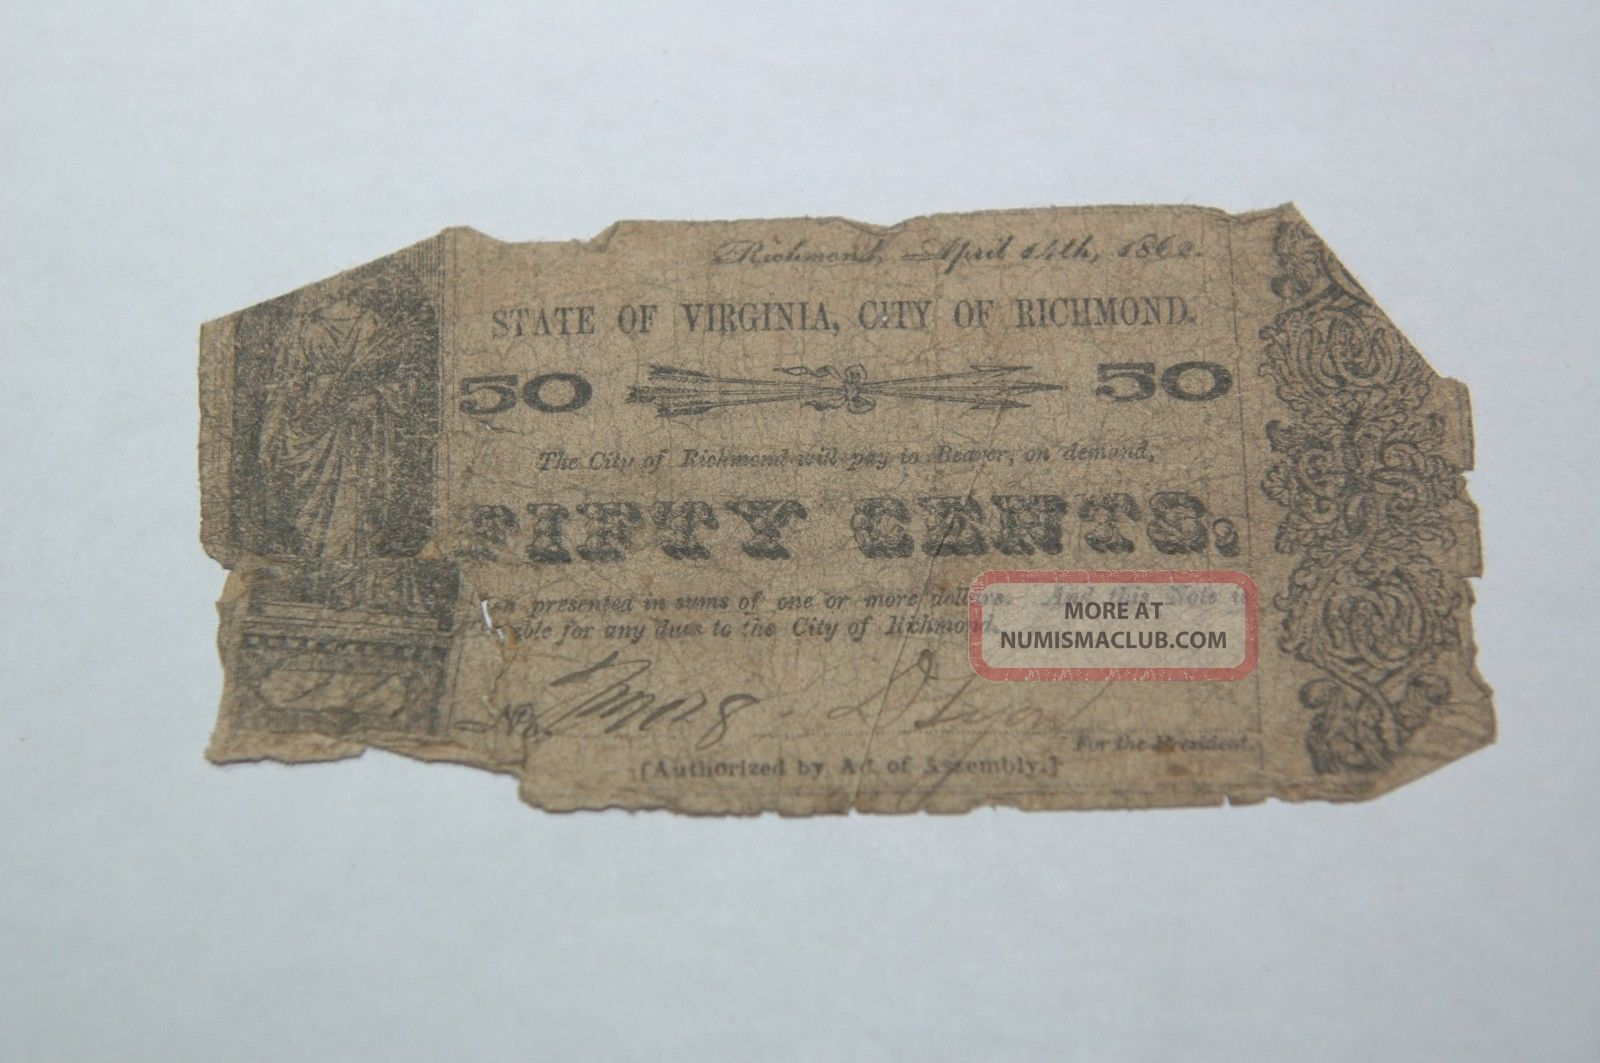 1862 State Of Virginia,  City Of Richmond 50c Cent Note,  Worn Paper Money: US photo